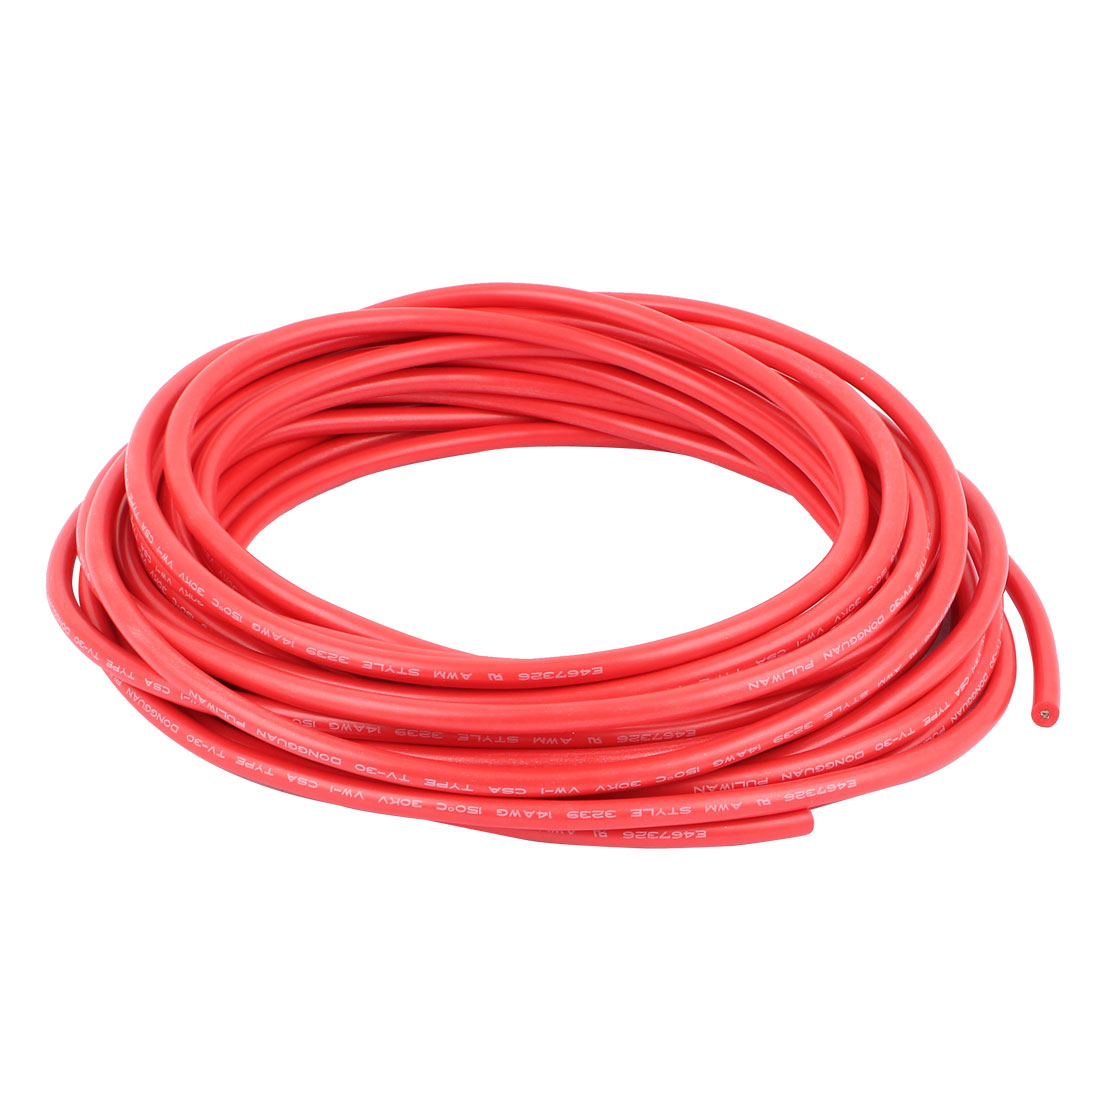 UXCELL 10M 32.8Ft 14Awg 30Kv Electric Copper Core Flexible Silicone Wire Cable Red<br>